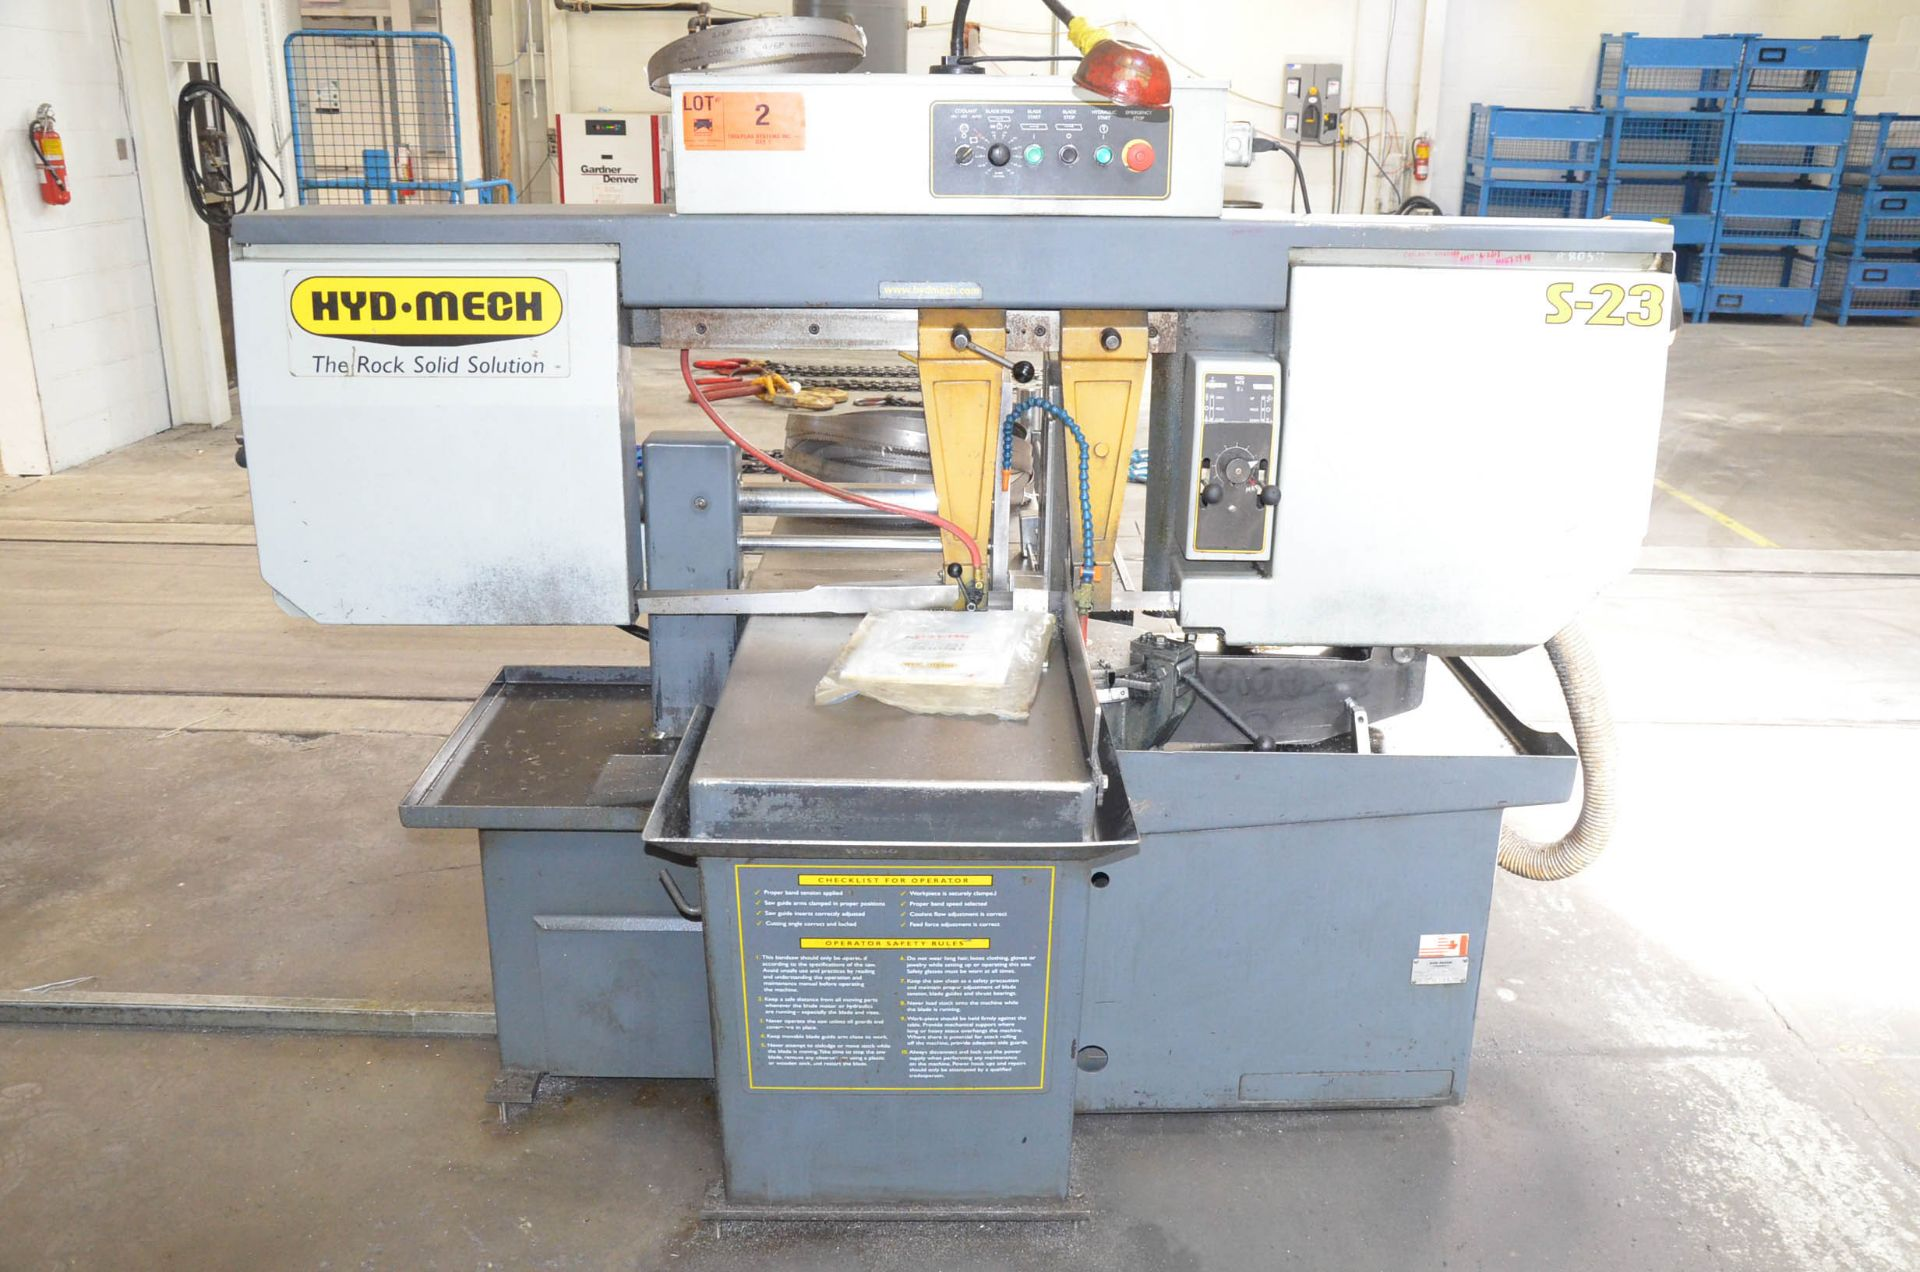 """HYD-MECH S-23 HORIZONTAL BAND SAW WITH 20"""" CAPACITY, HYDRAULIC VISE, COOLANT, CHIP AUGER, 600V/3PH/ - Image 7 of 8"""